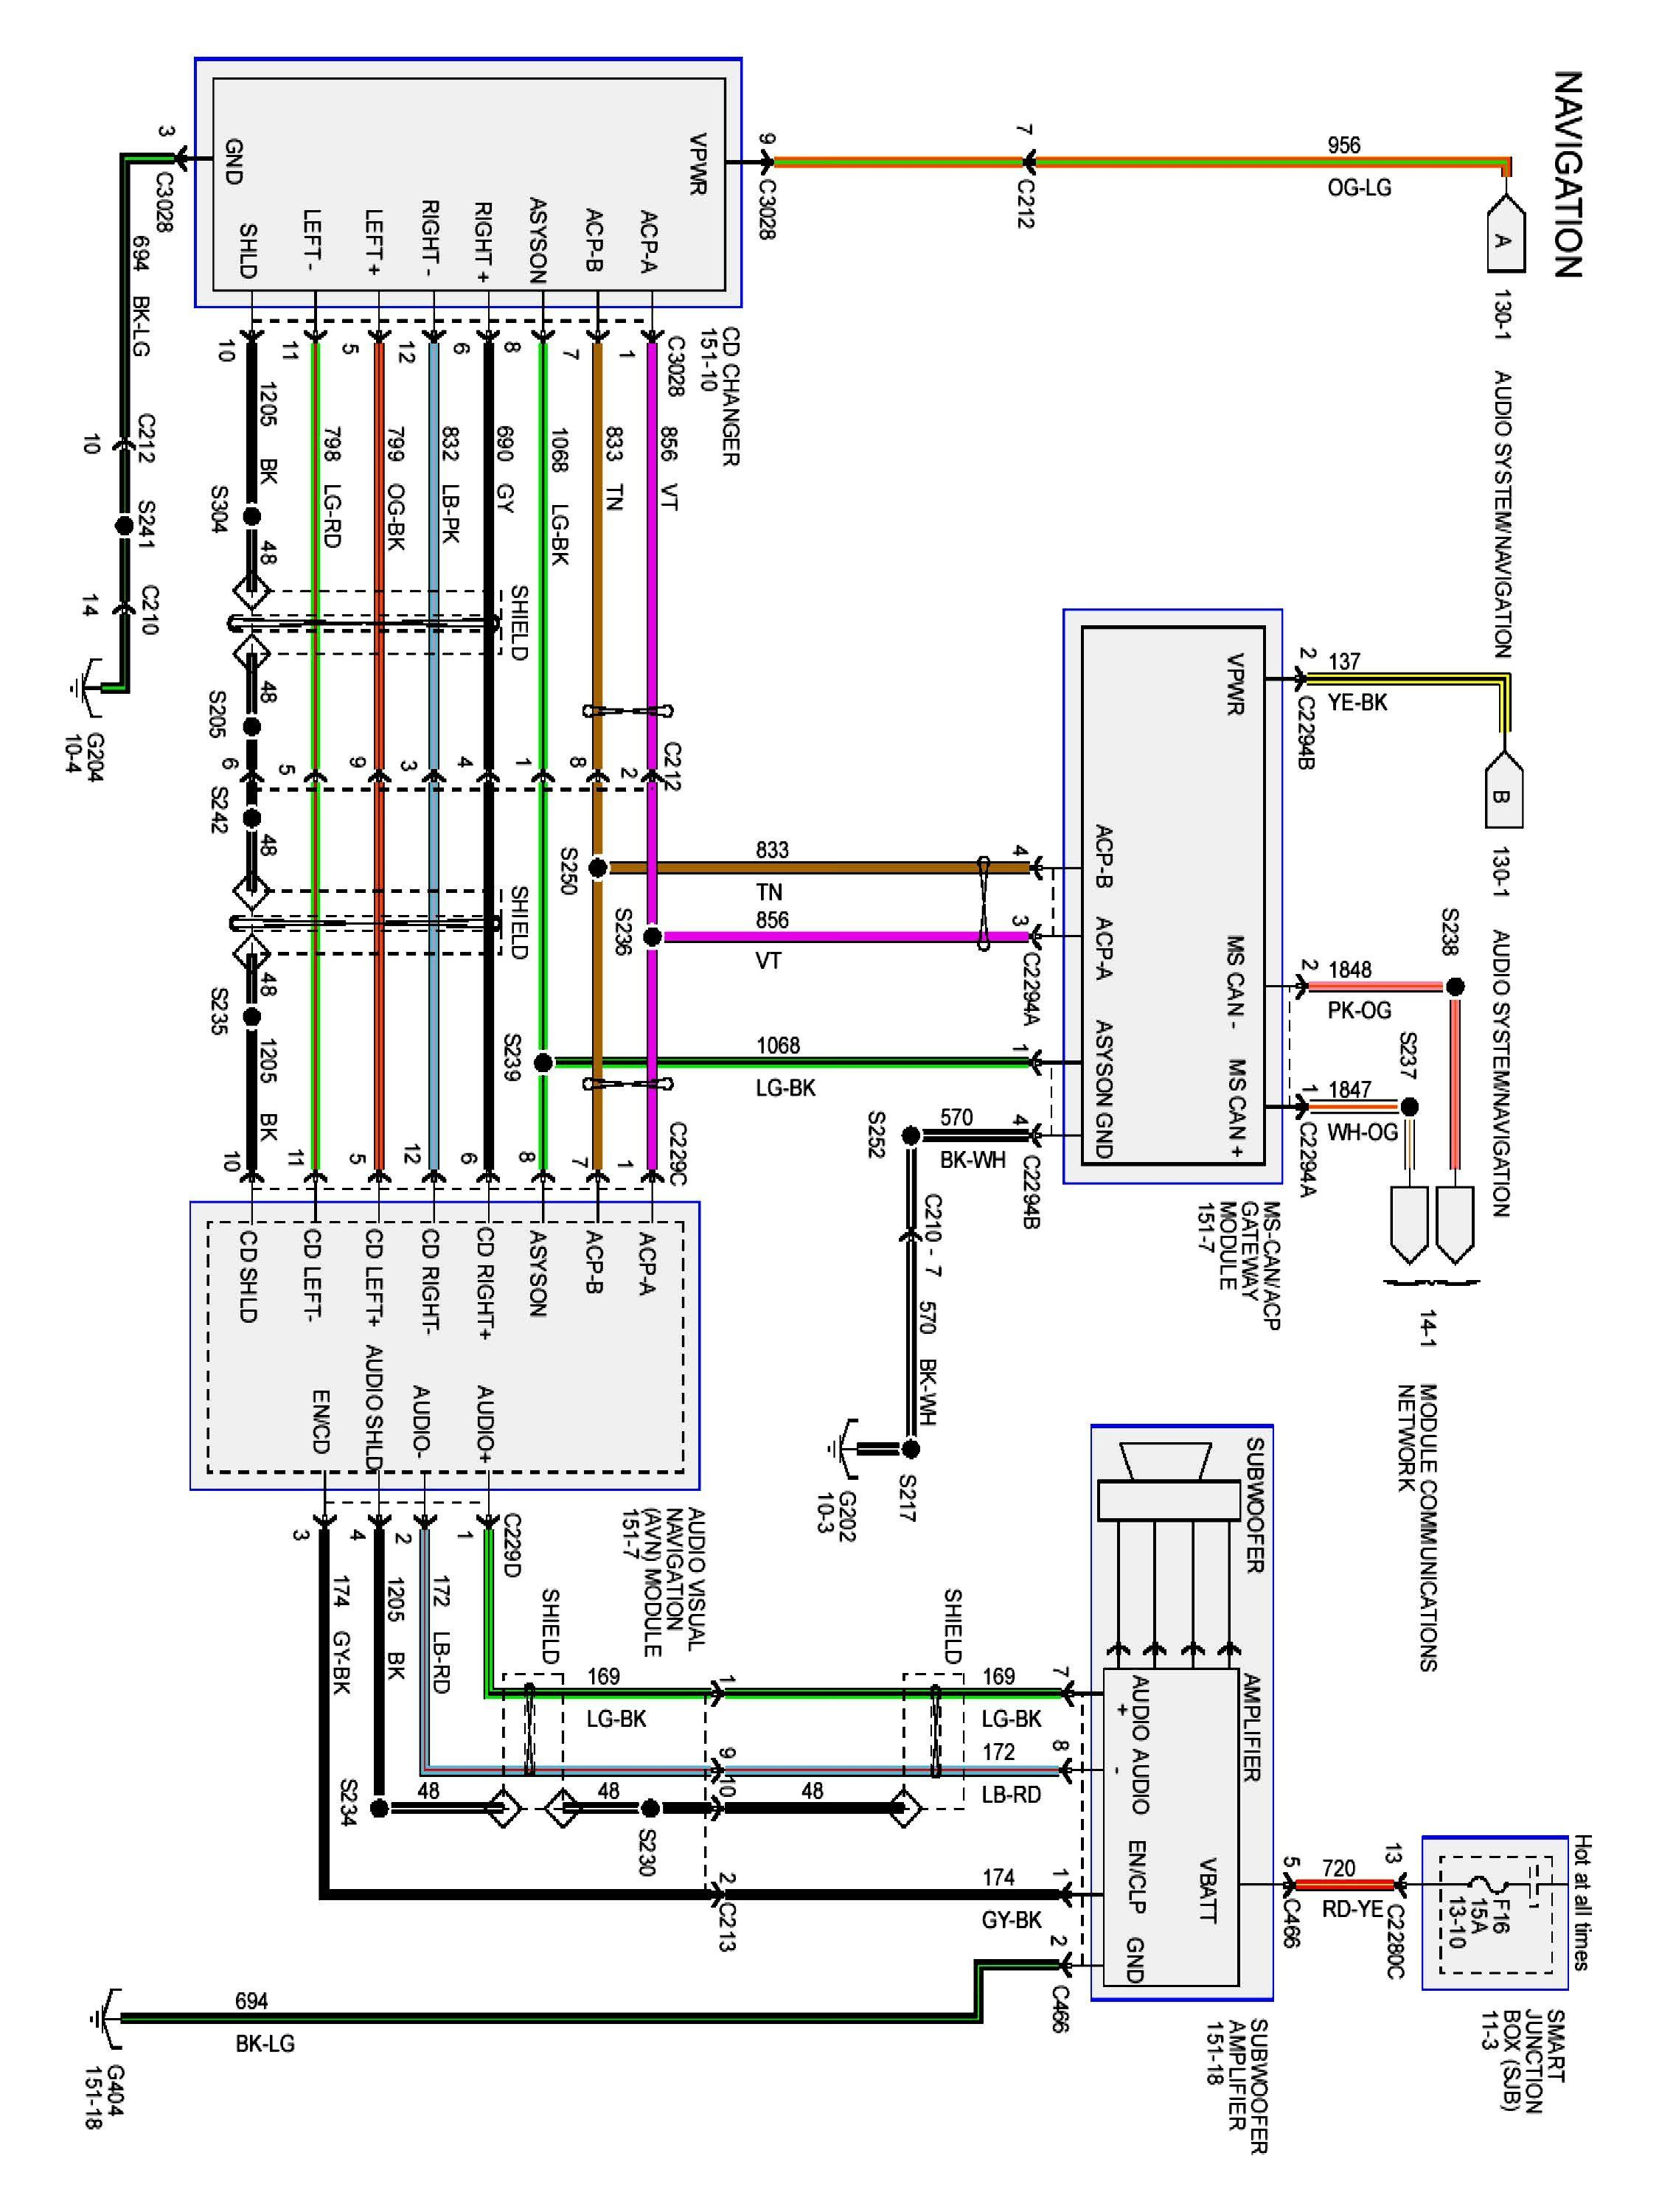 2007 Toyota Wiring Diagrams - wiring diagram loan-ukp -  loan-ukp.energiavicina.it | 2007 Toyota Wiring Diagrams |  | energiavicina.it